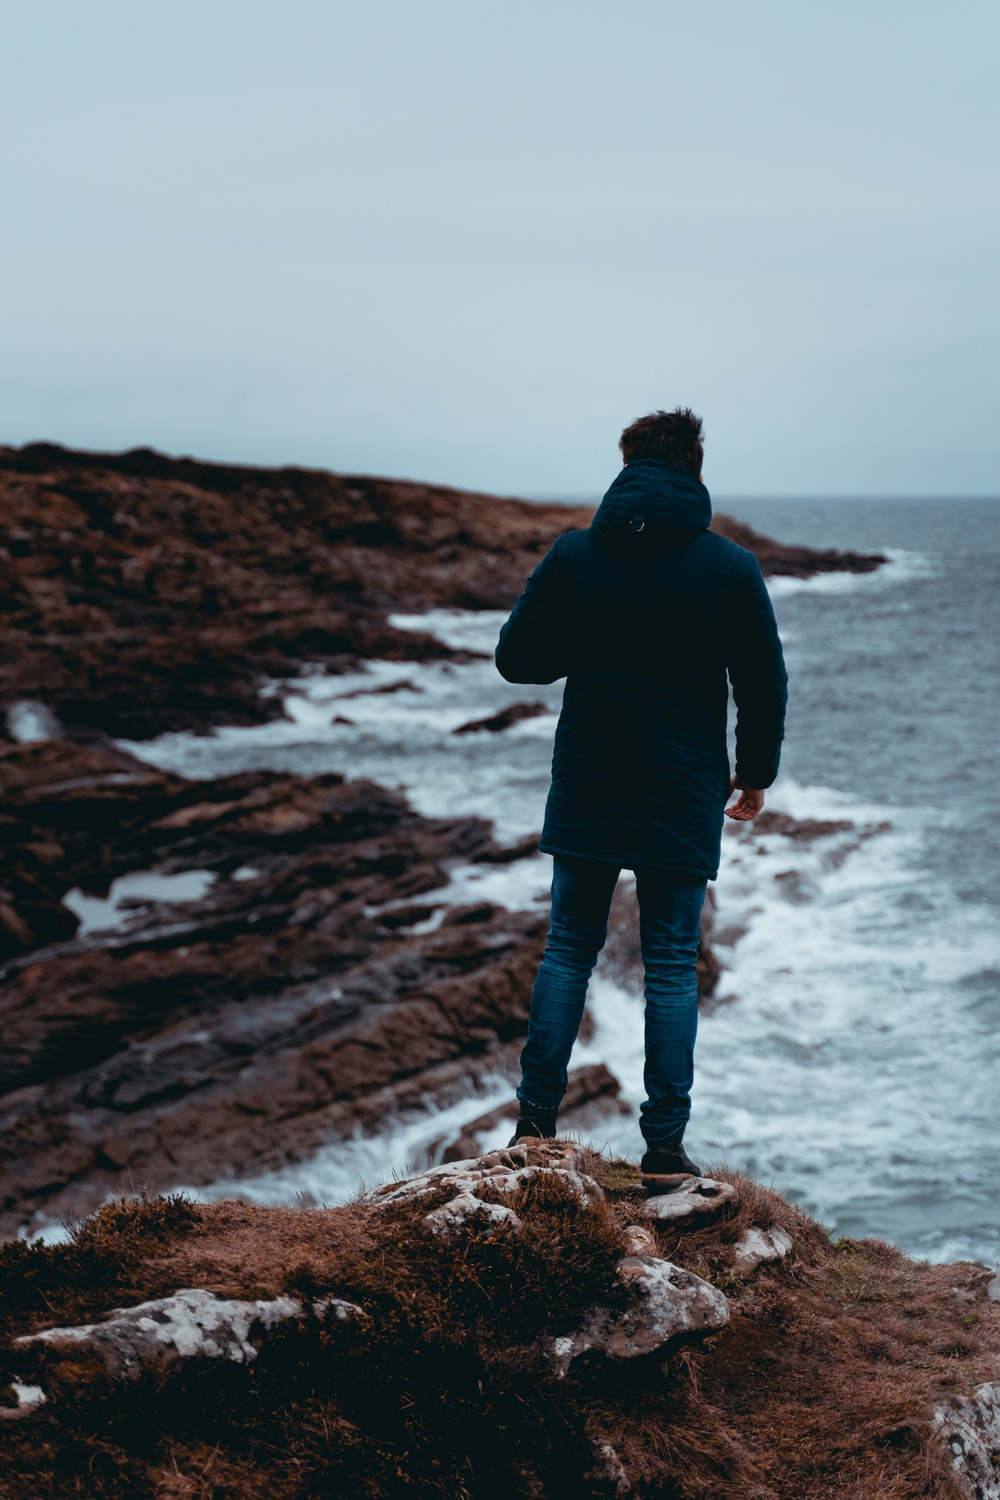 man in black jacket standing on rock formation near sea during daytime